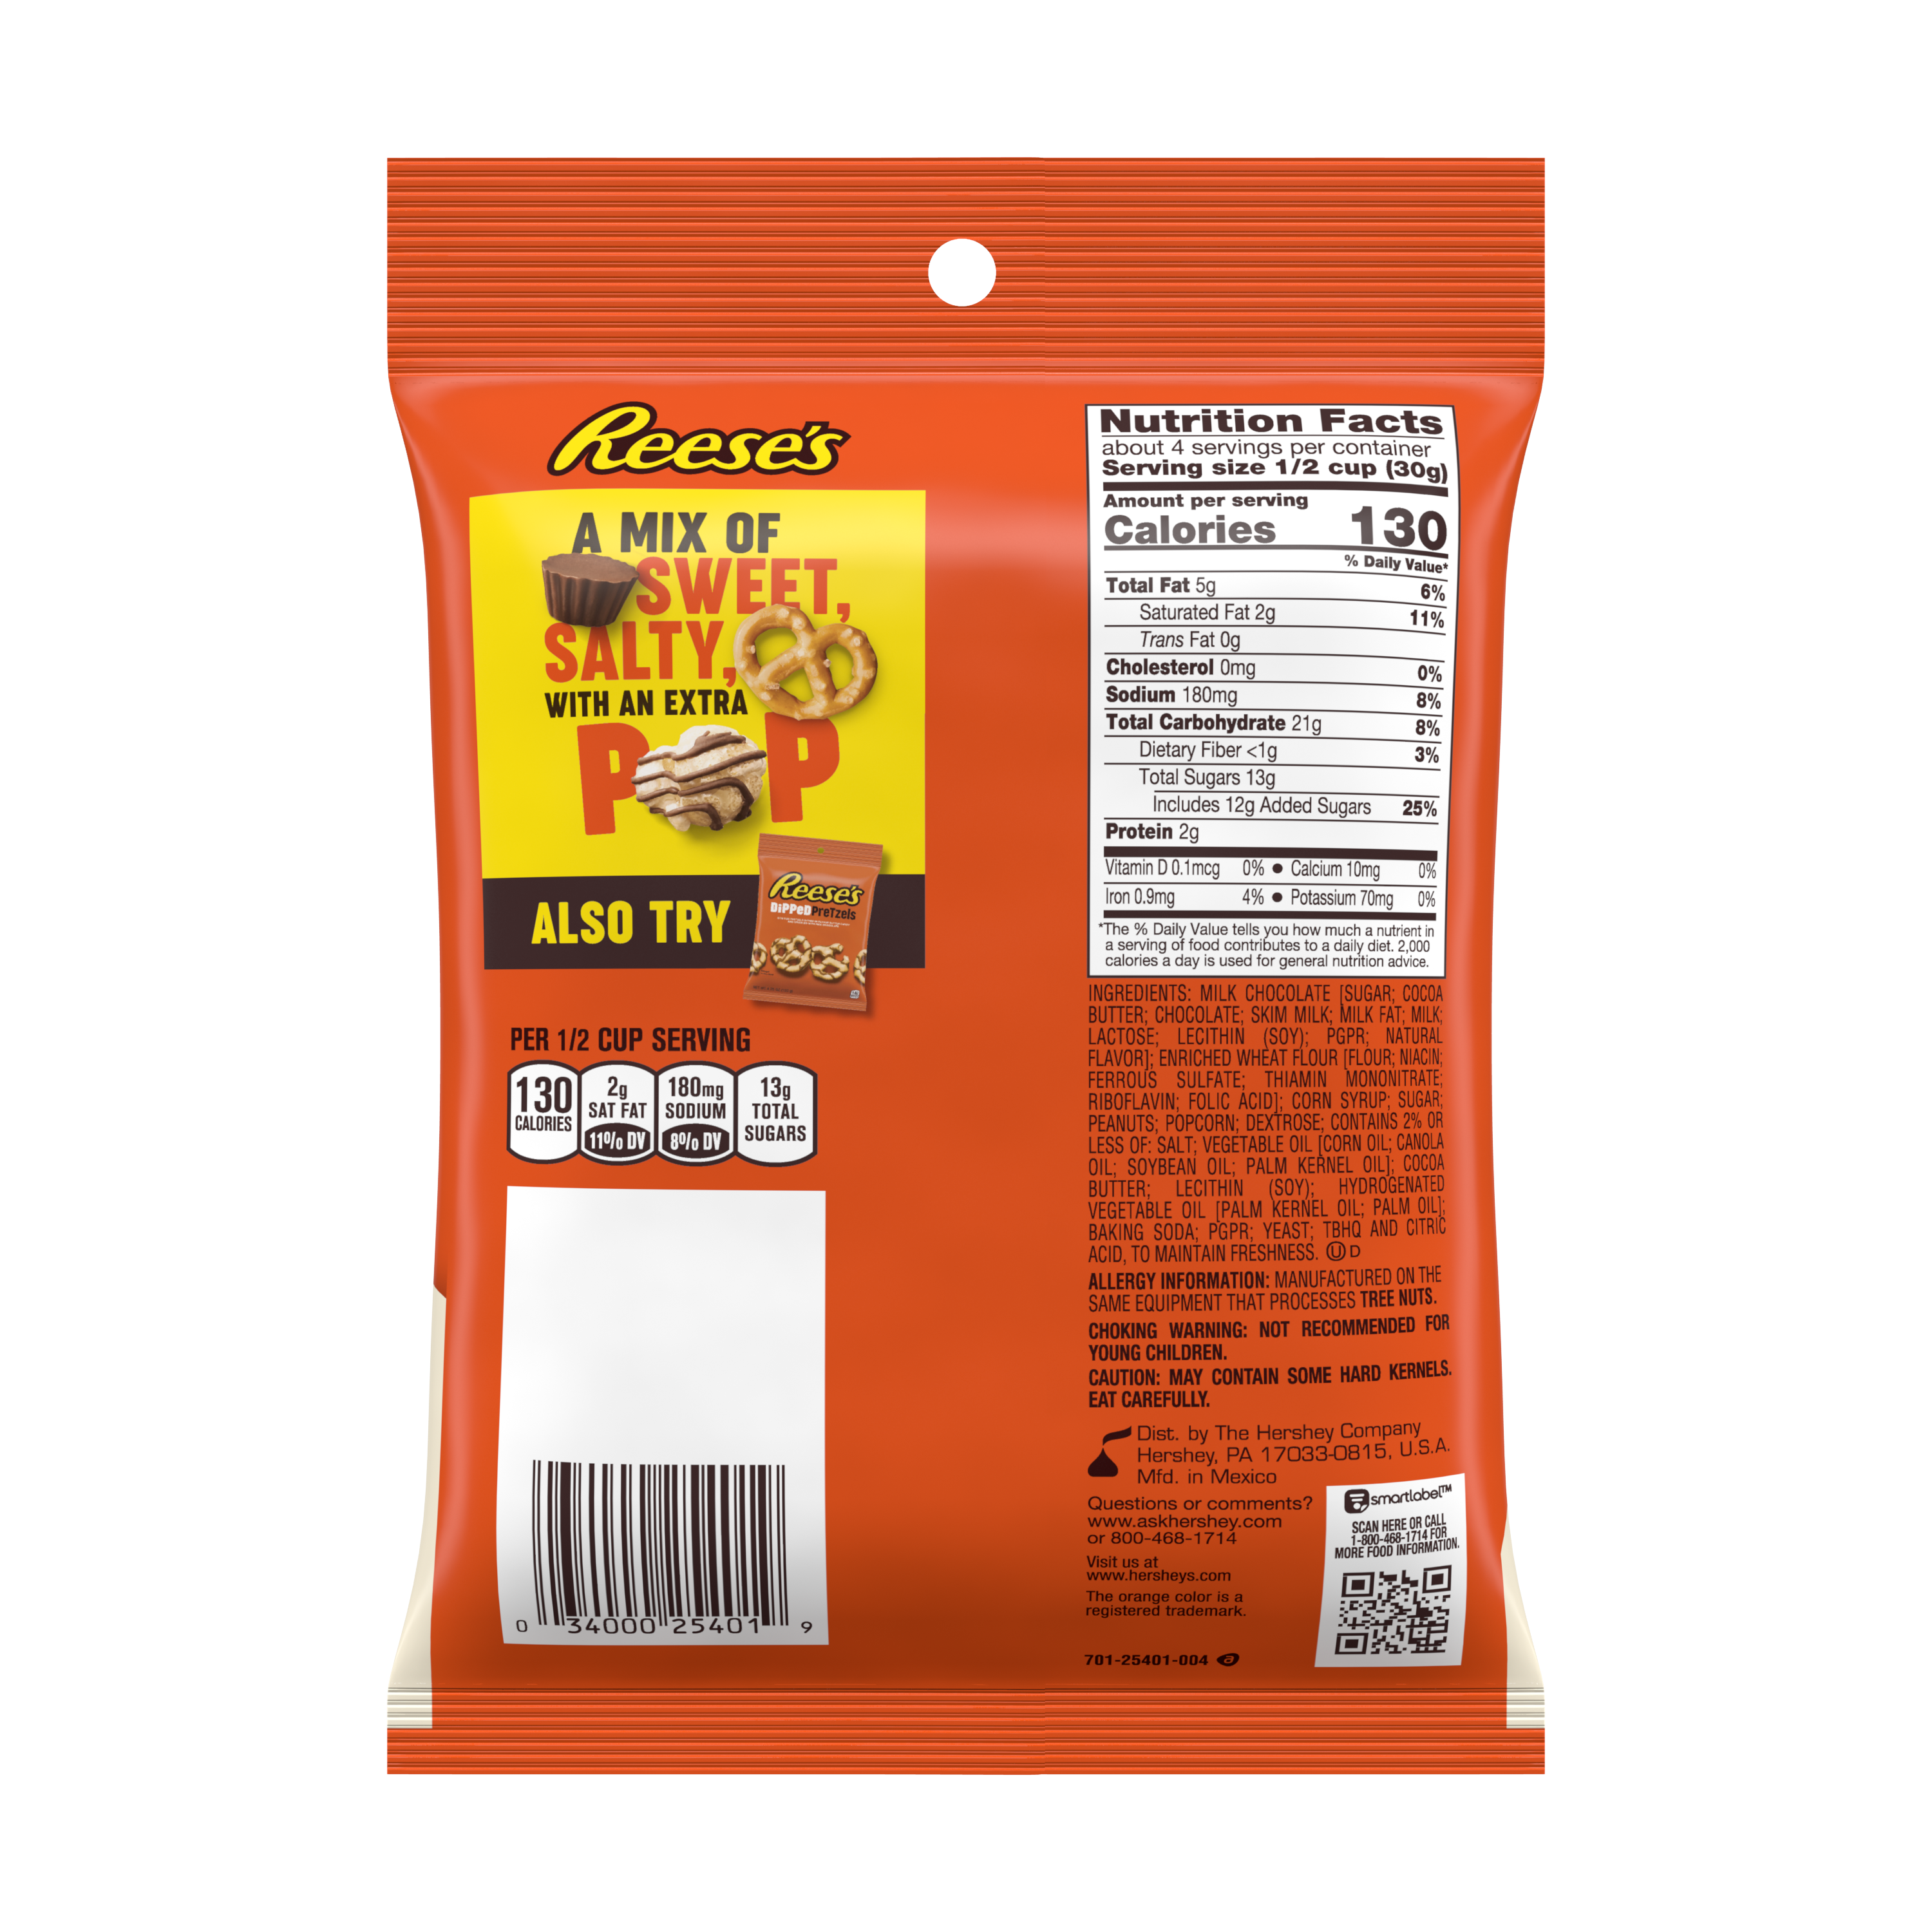 REESE'S Popped Milk Chocolate Peanut Butter Snack Mix, 4 oz bag - Back of Package